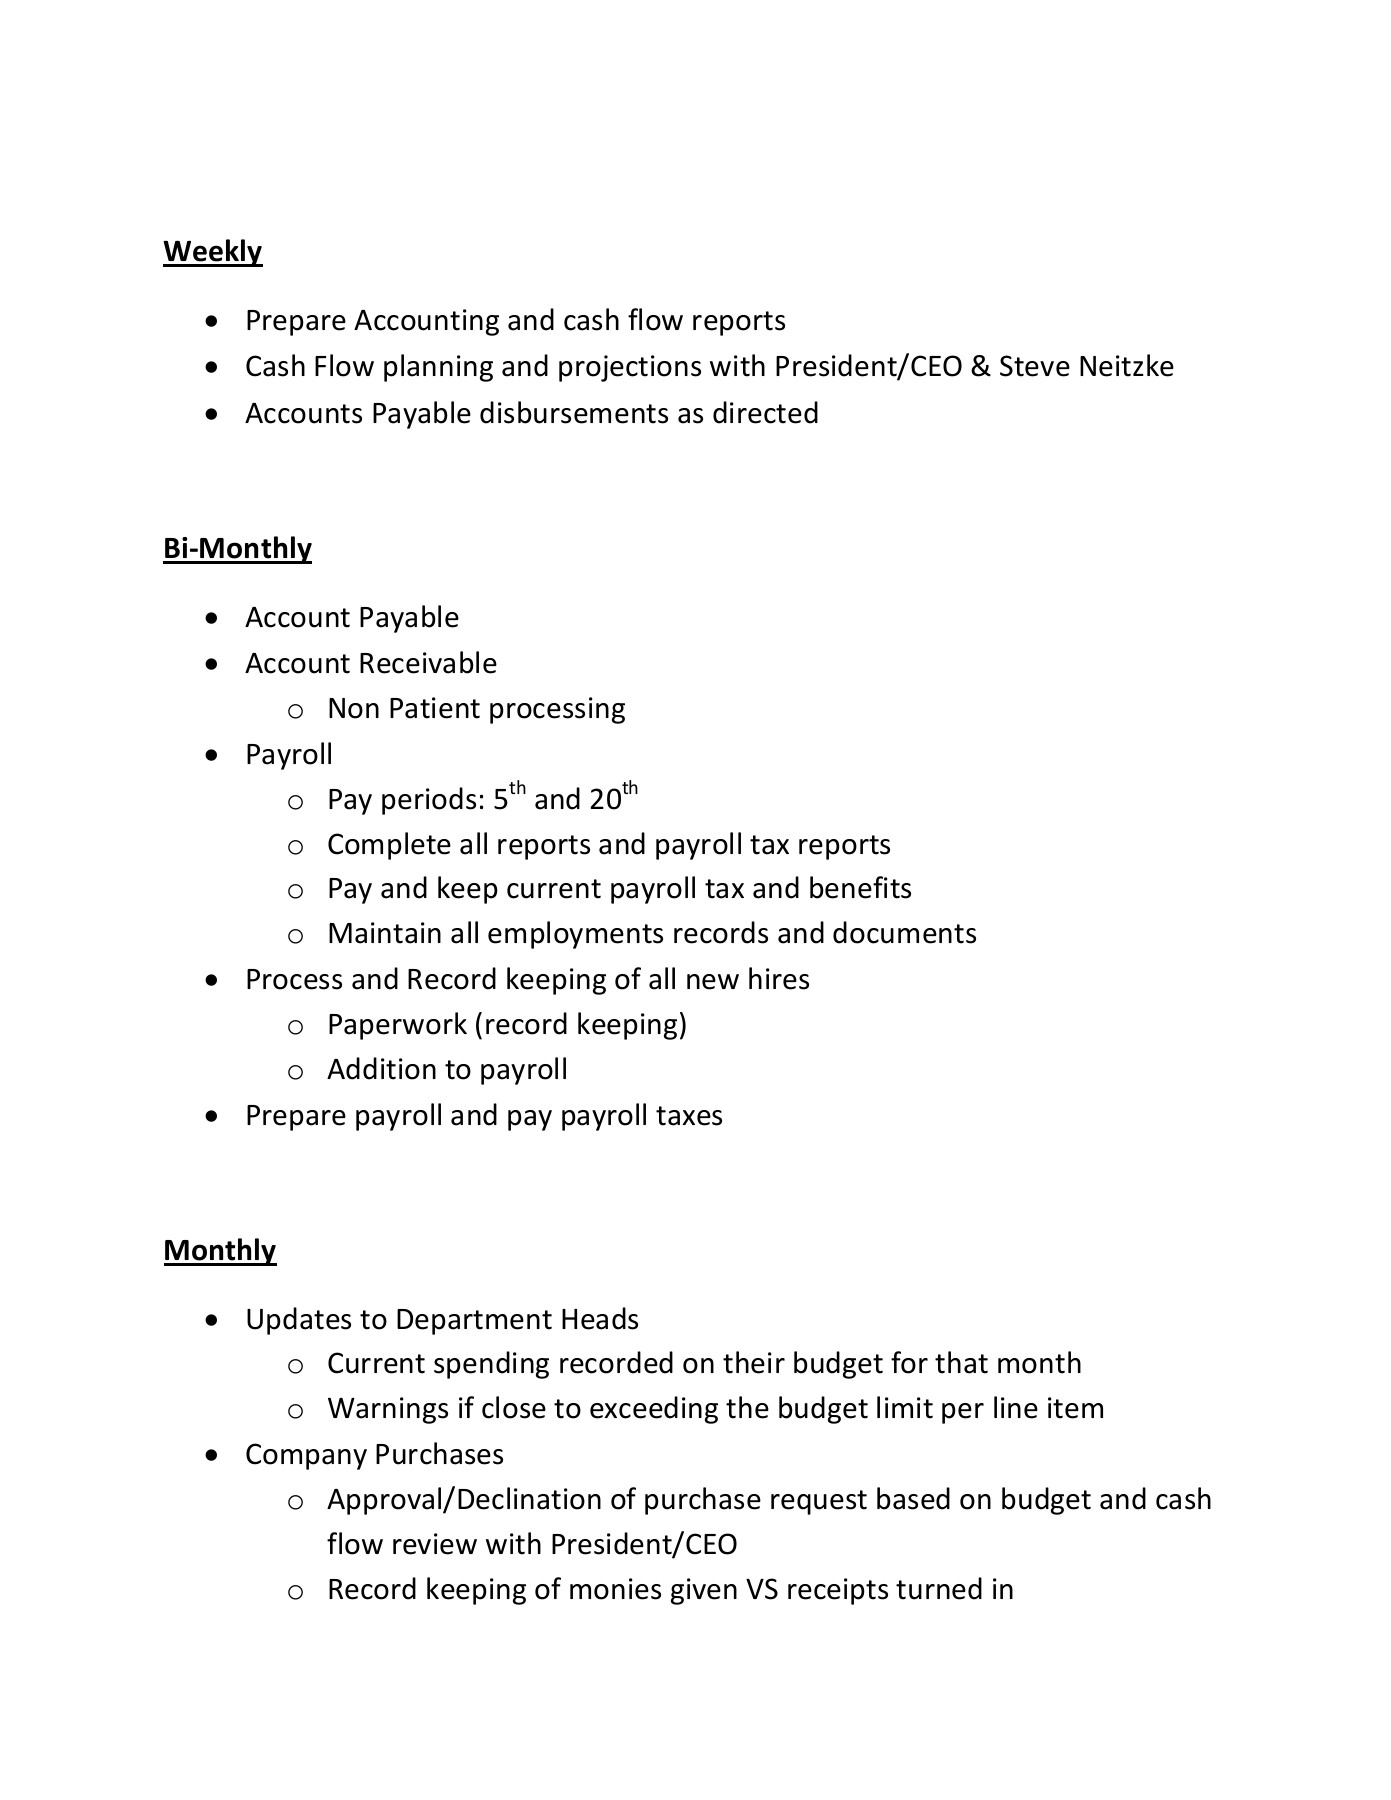 staff accountant job description (1) - Leader in Managed